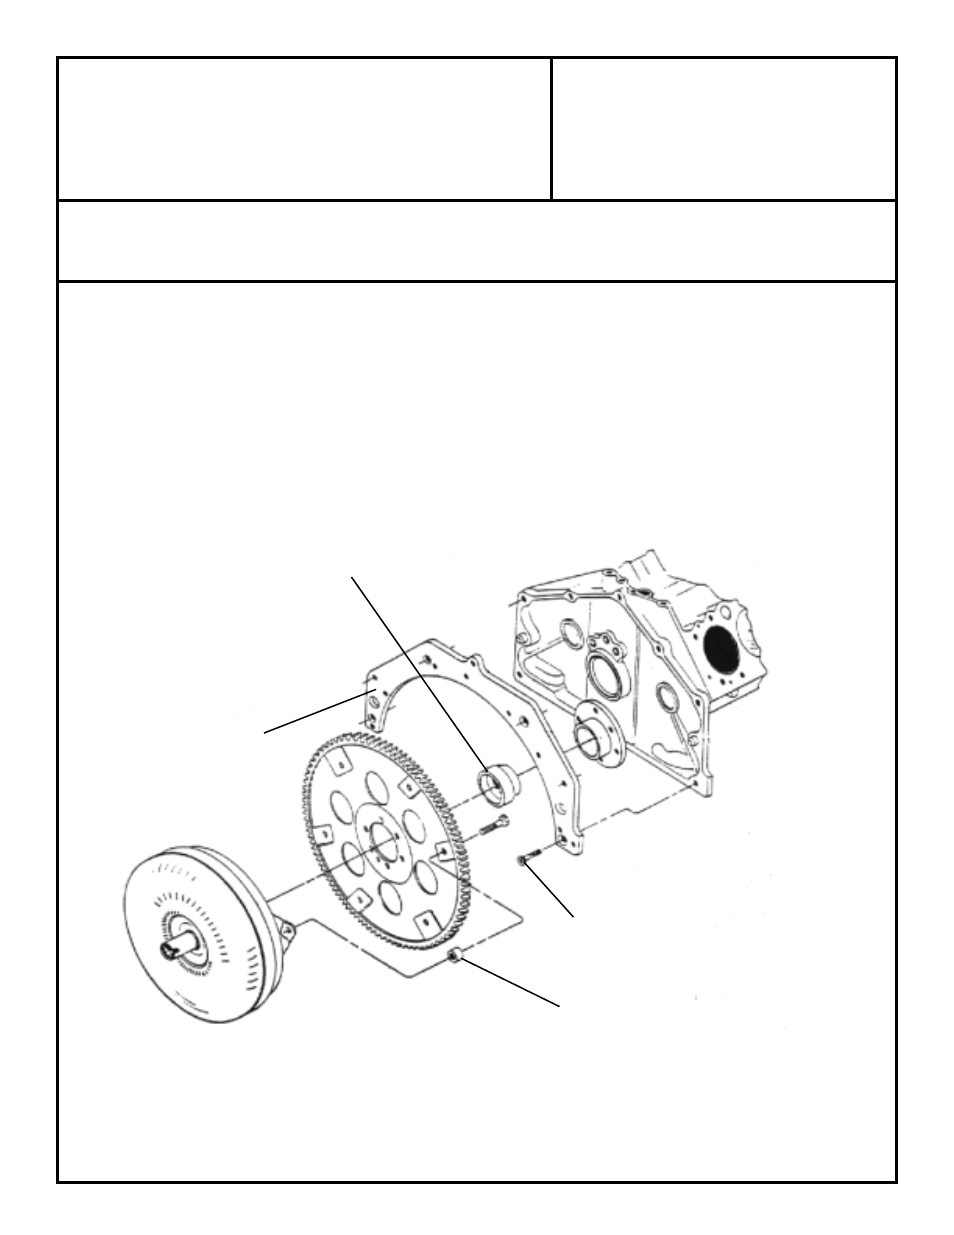 Chevy 350 Motor Wiring Diagram On Turbo 350 C Wiring Diagram